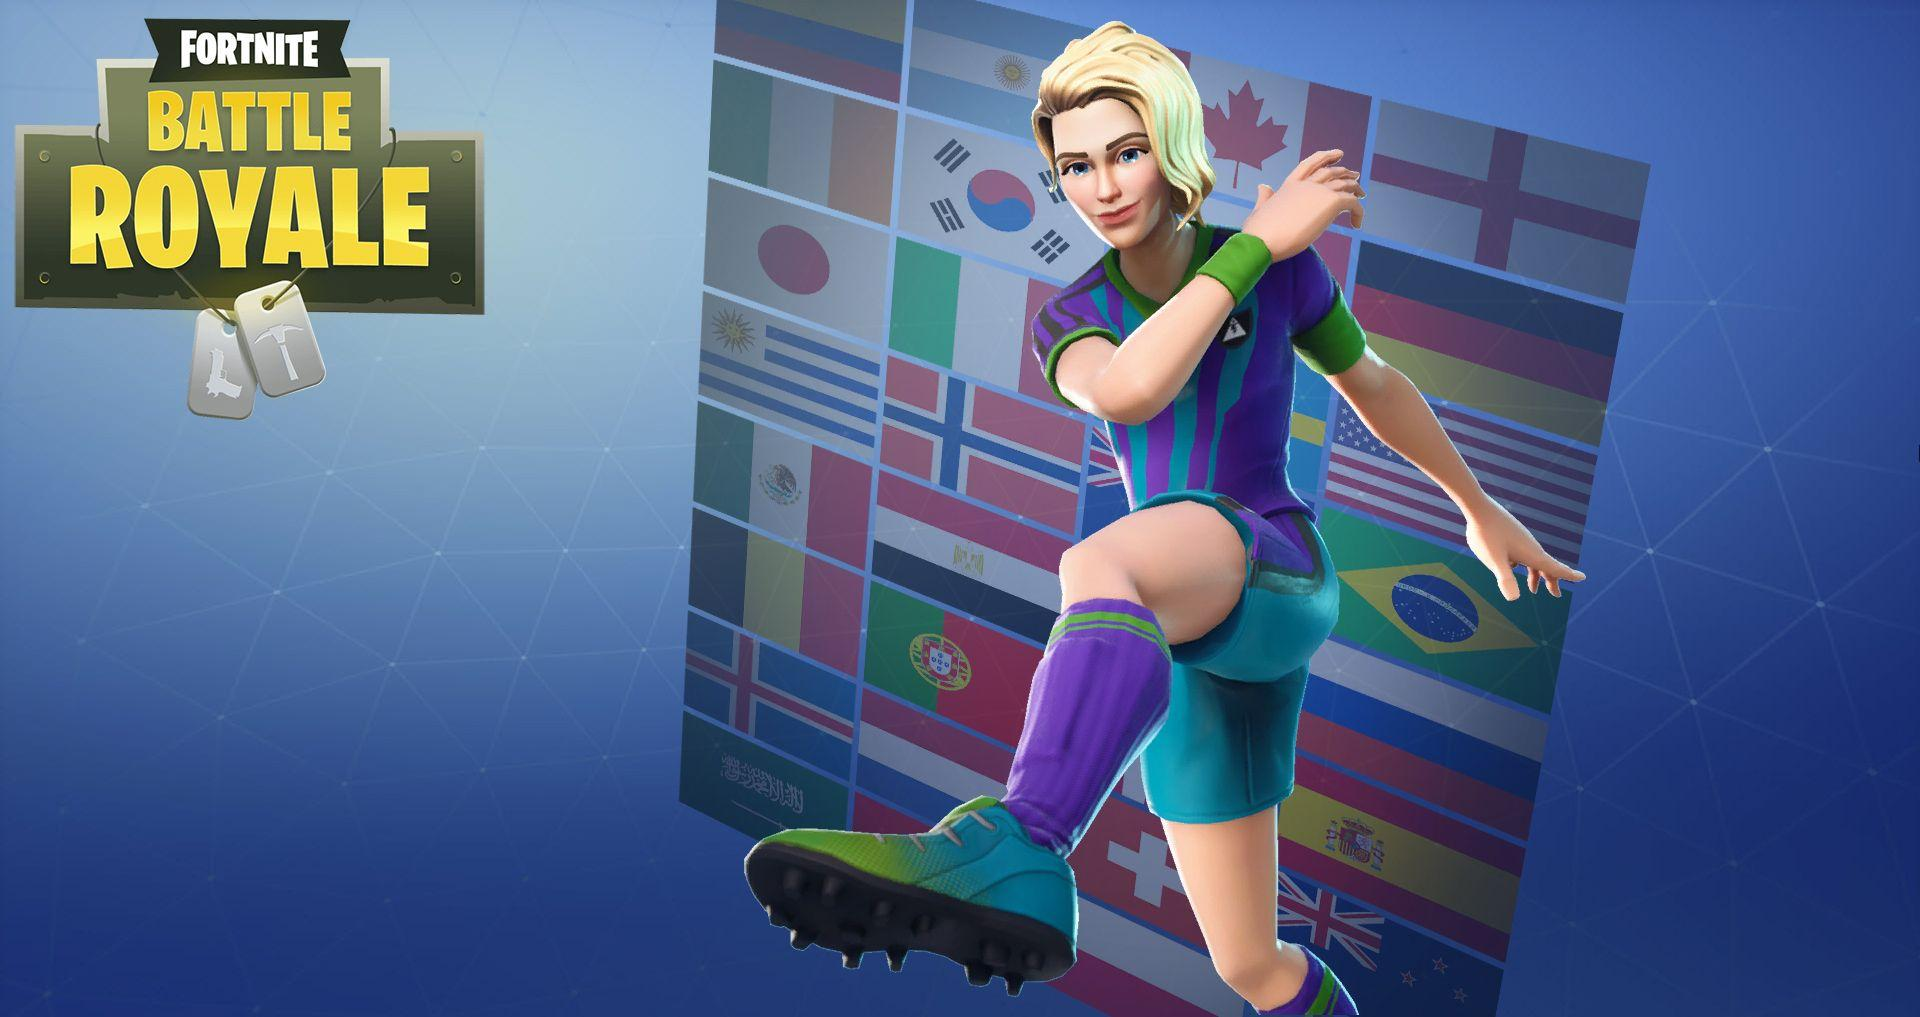 Finesse Finisher Fortnite Outfit Skin How to Get | Fortnite Watch